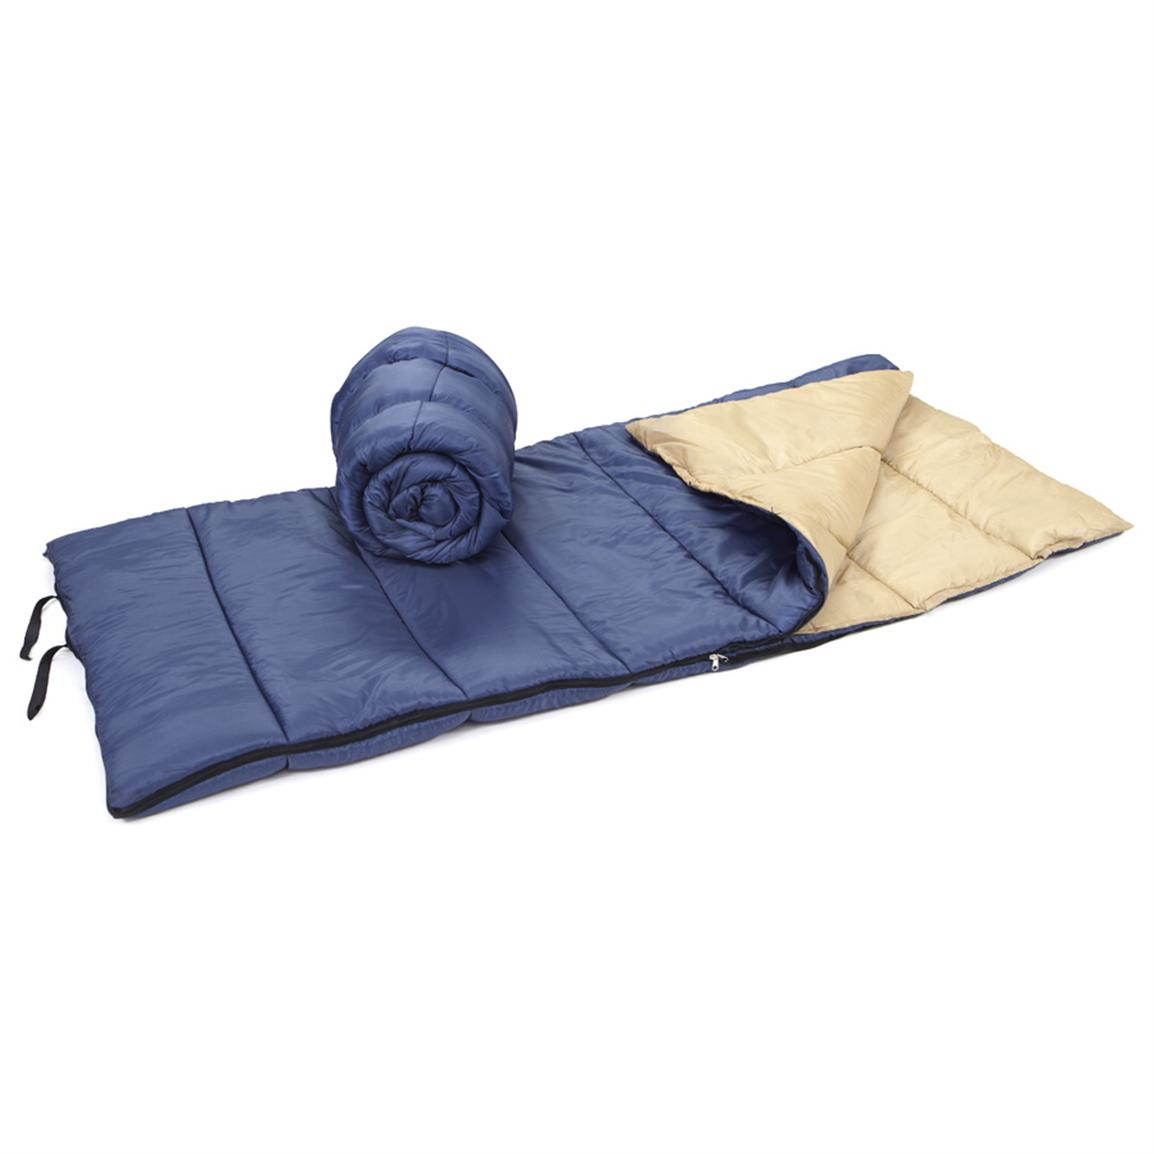 "2 Famous Maker 33"" x 75"" Sleeping Bags, Blue with Tan Interior • Straps keep them rolled up"